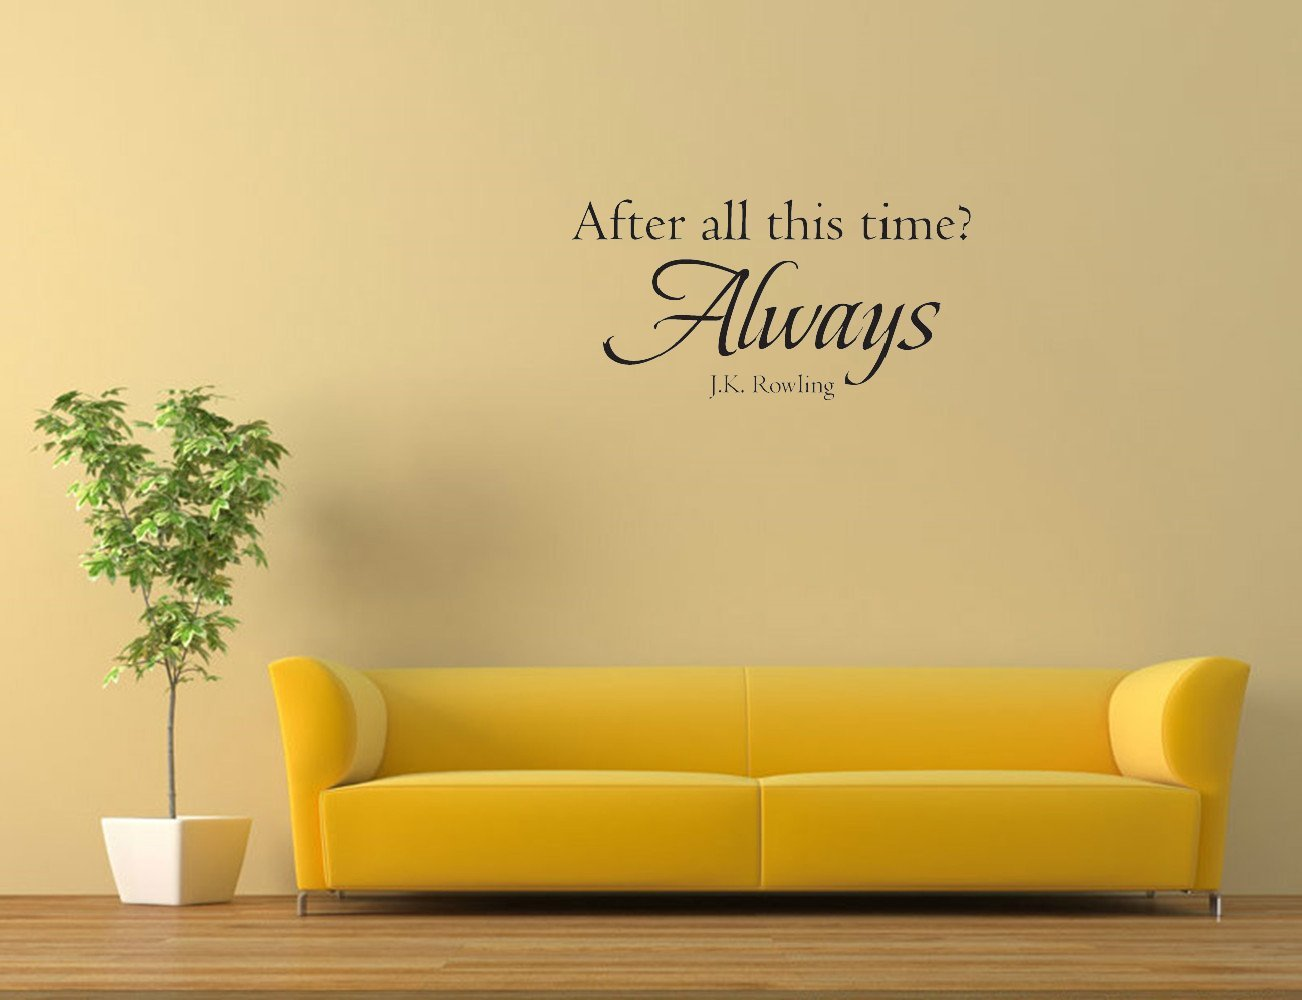 Amazon.com: After all this time? Always J.K. Rowling. Vinyl Wall ...